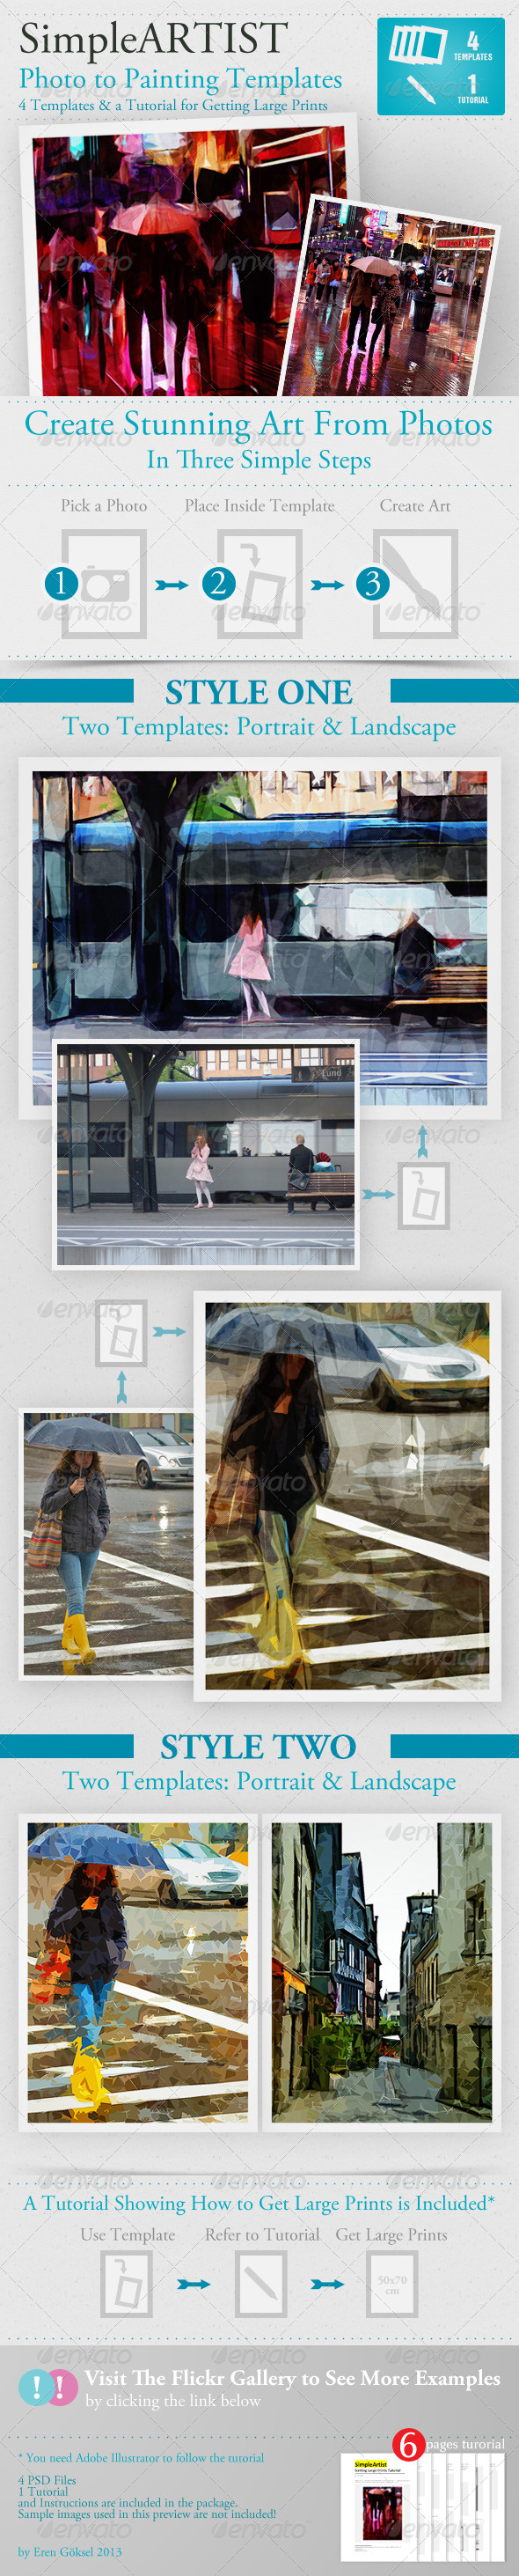 GraphicRiver Simple Artist Painting Template 4115707